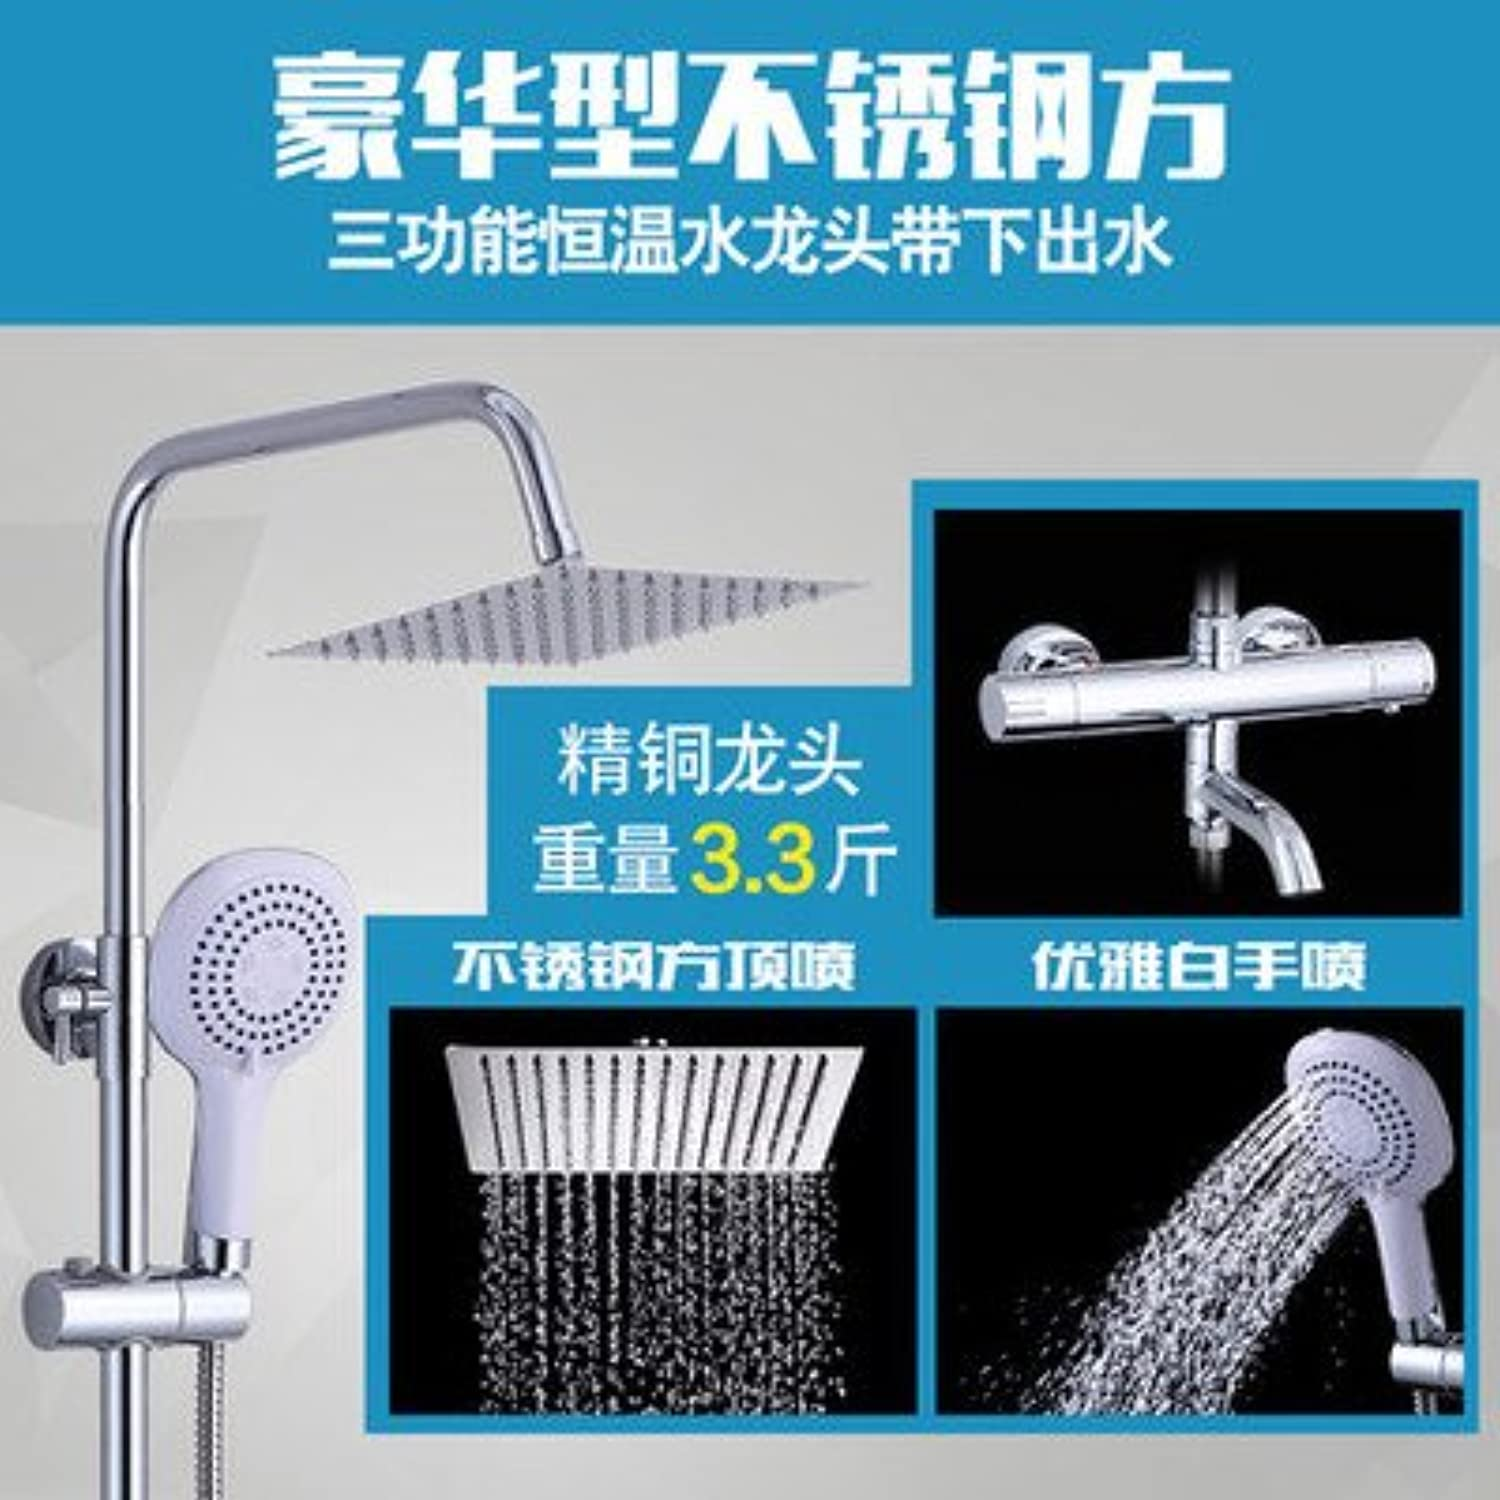 NewBorn Faucet Kitchen Or Bathroom Sink Mixer Tap Shower Mixer Thermostatic Shower Mixer Taps, Hot & Cold Water Shower Set Brass Water Tap S Heated Water With redating Three-Round Package